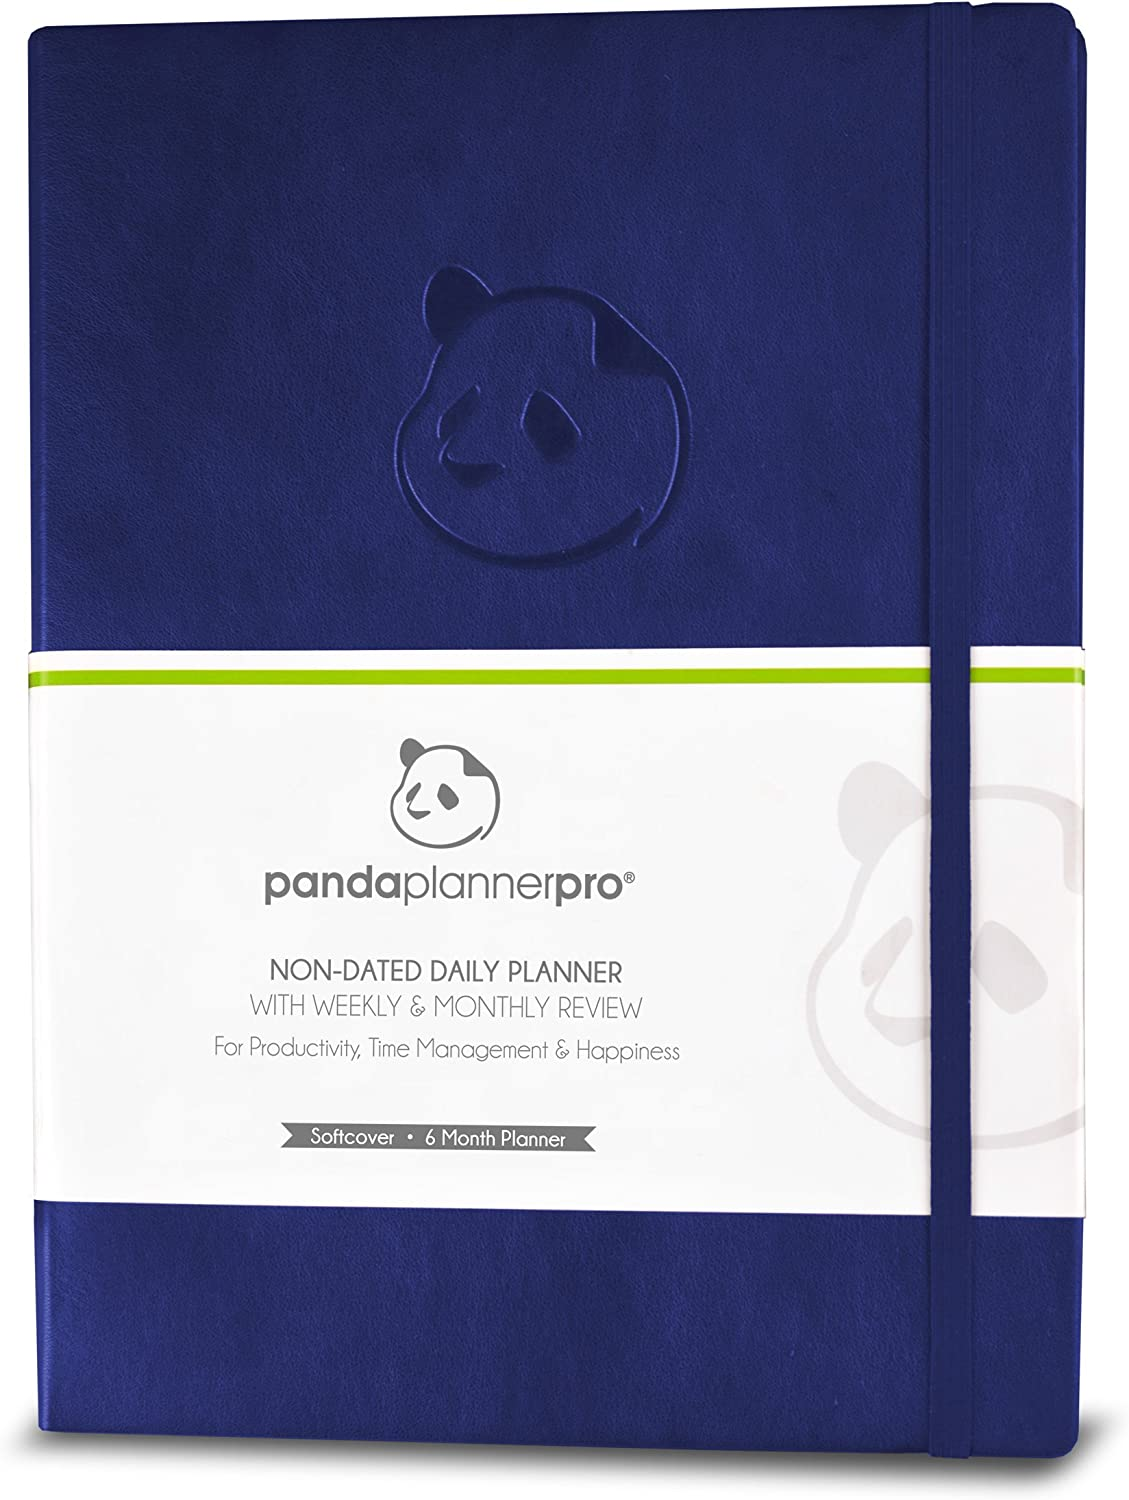 "Panda Planner Pro - Best Daily Planner for Happiness & Productivity - 8.5 x 11"" Softcover - Undated Day - Guaranteed to Get You Organized - Gratitude & Goals Journal (Purple)"